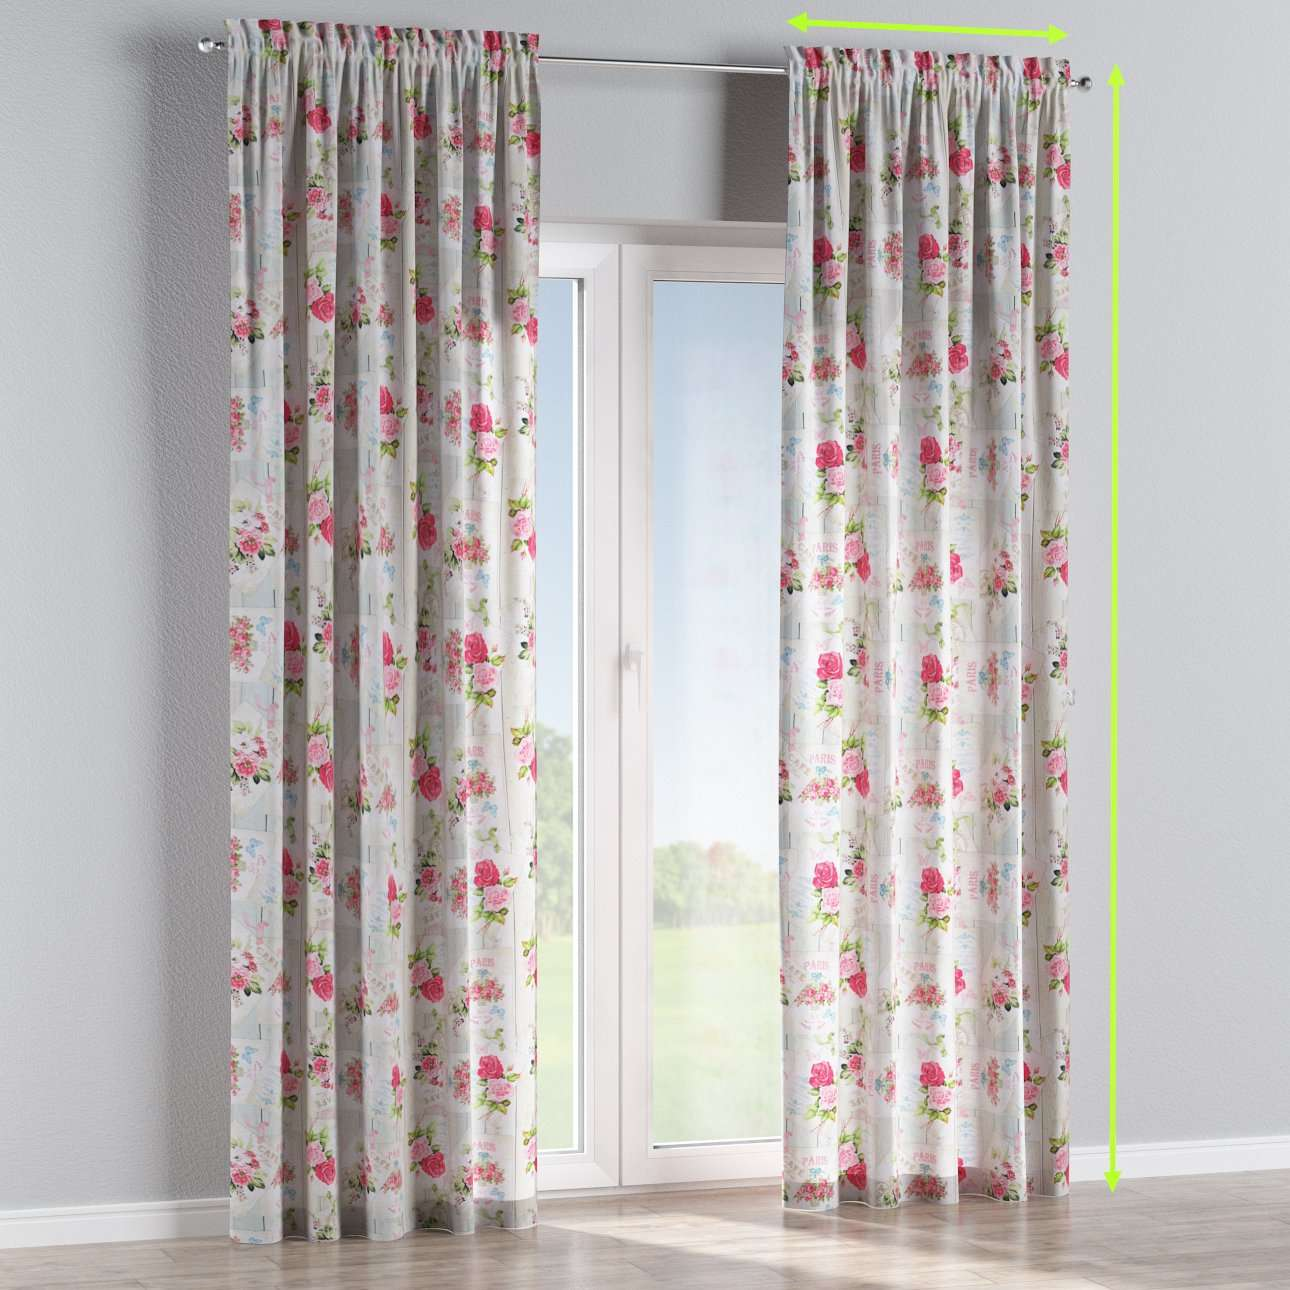 Slot and frill lined curtains in collection Ashley, fabric: 140-19